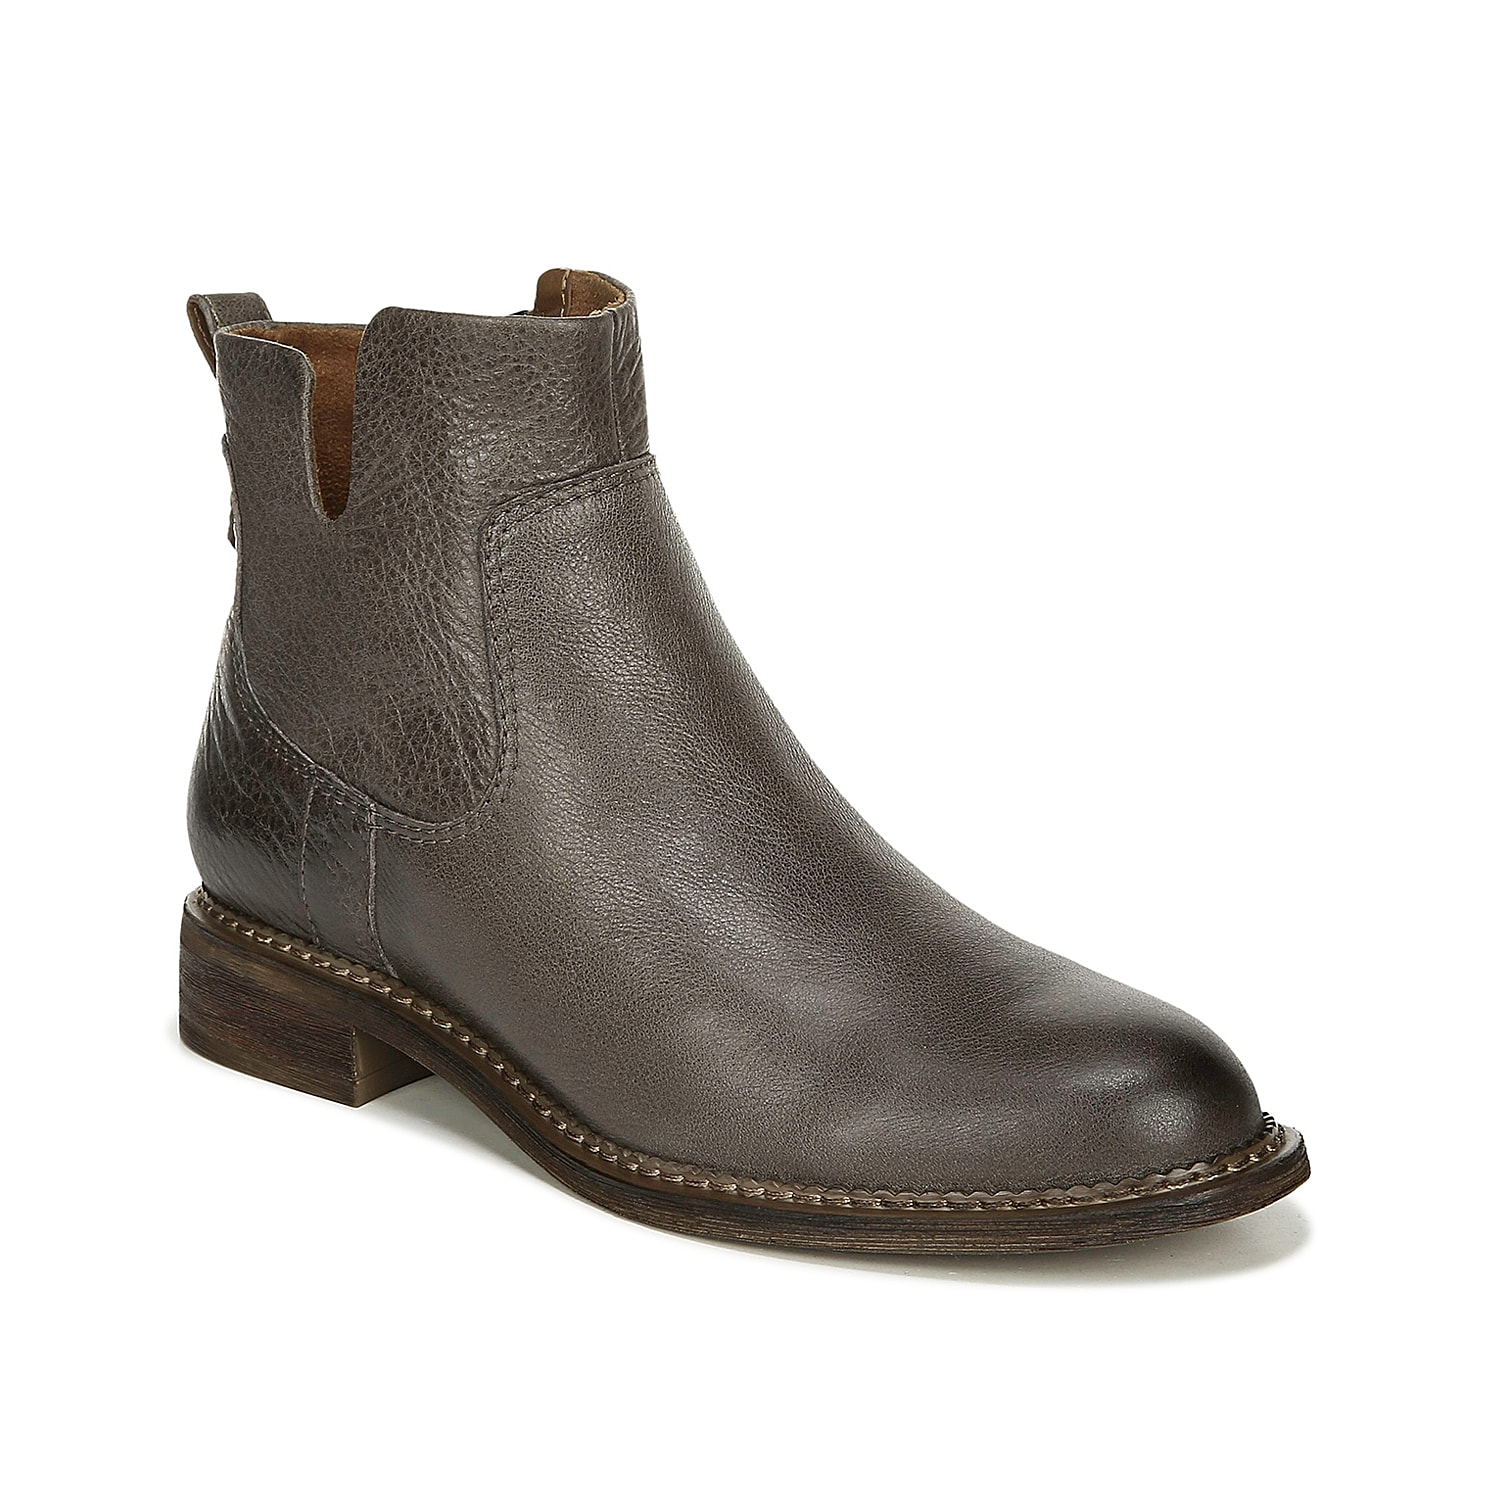 The Hoda bootie from Franco Sarto rocks a versatile design that will complement any cold weather look. The asymmetrical topline and pebbled leather upper will upgrade your jeans and sweaters.Click here for Boot Measuring Guide.